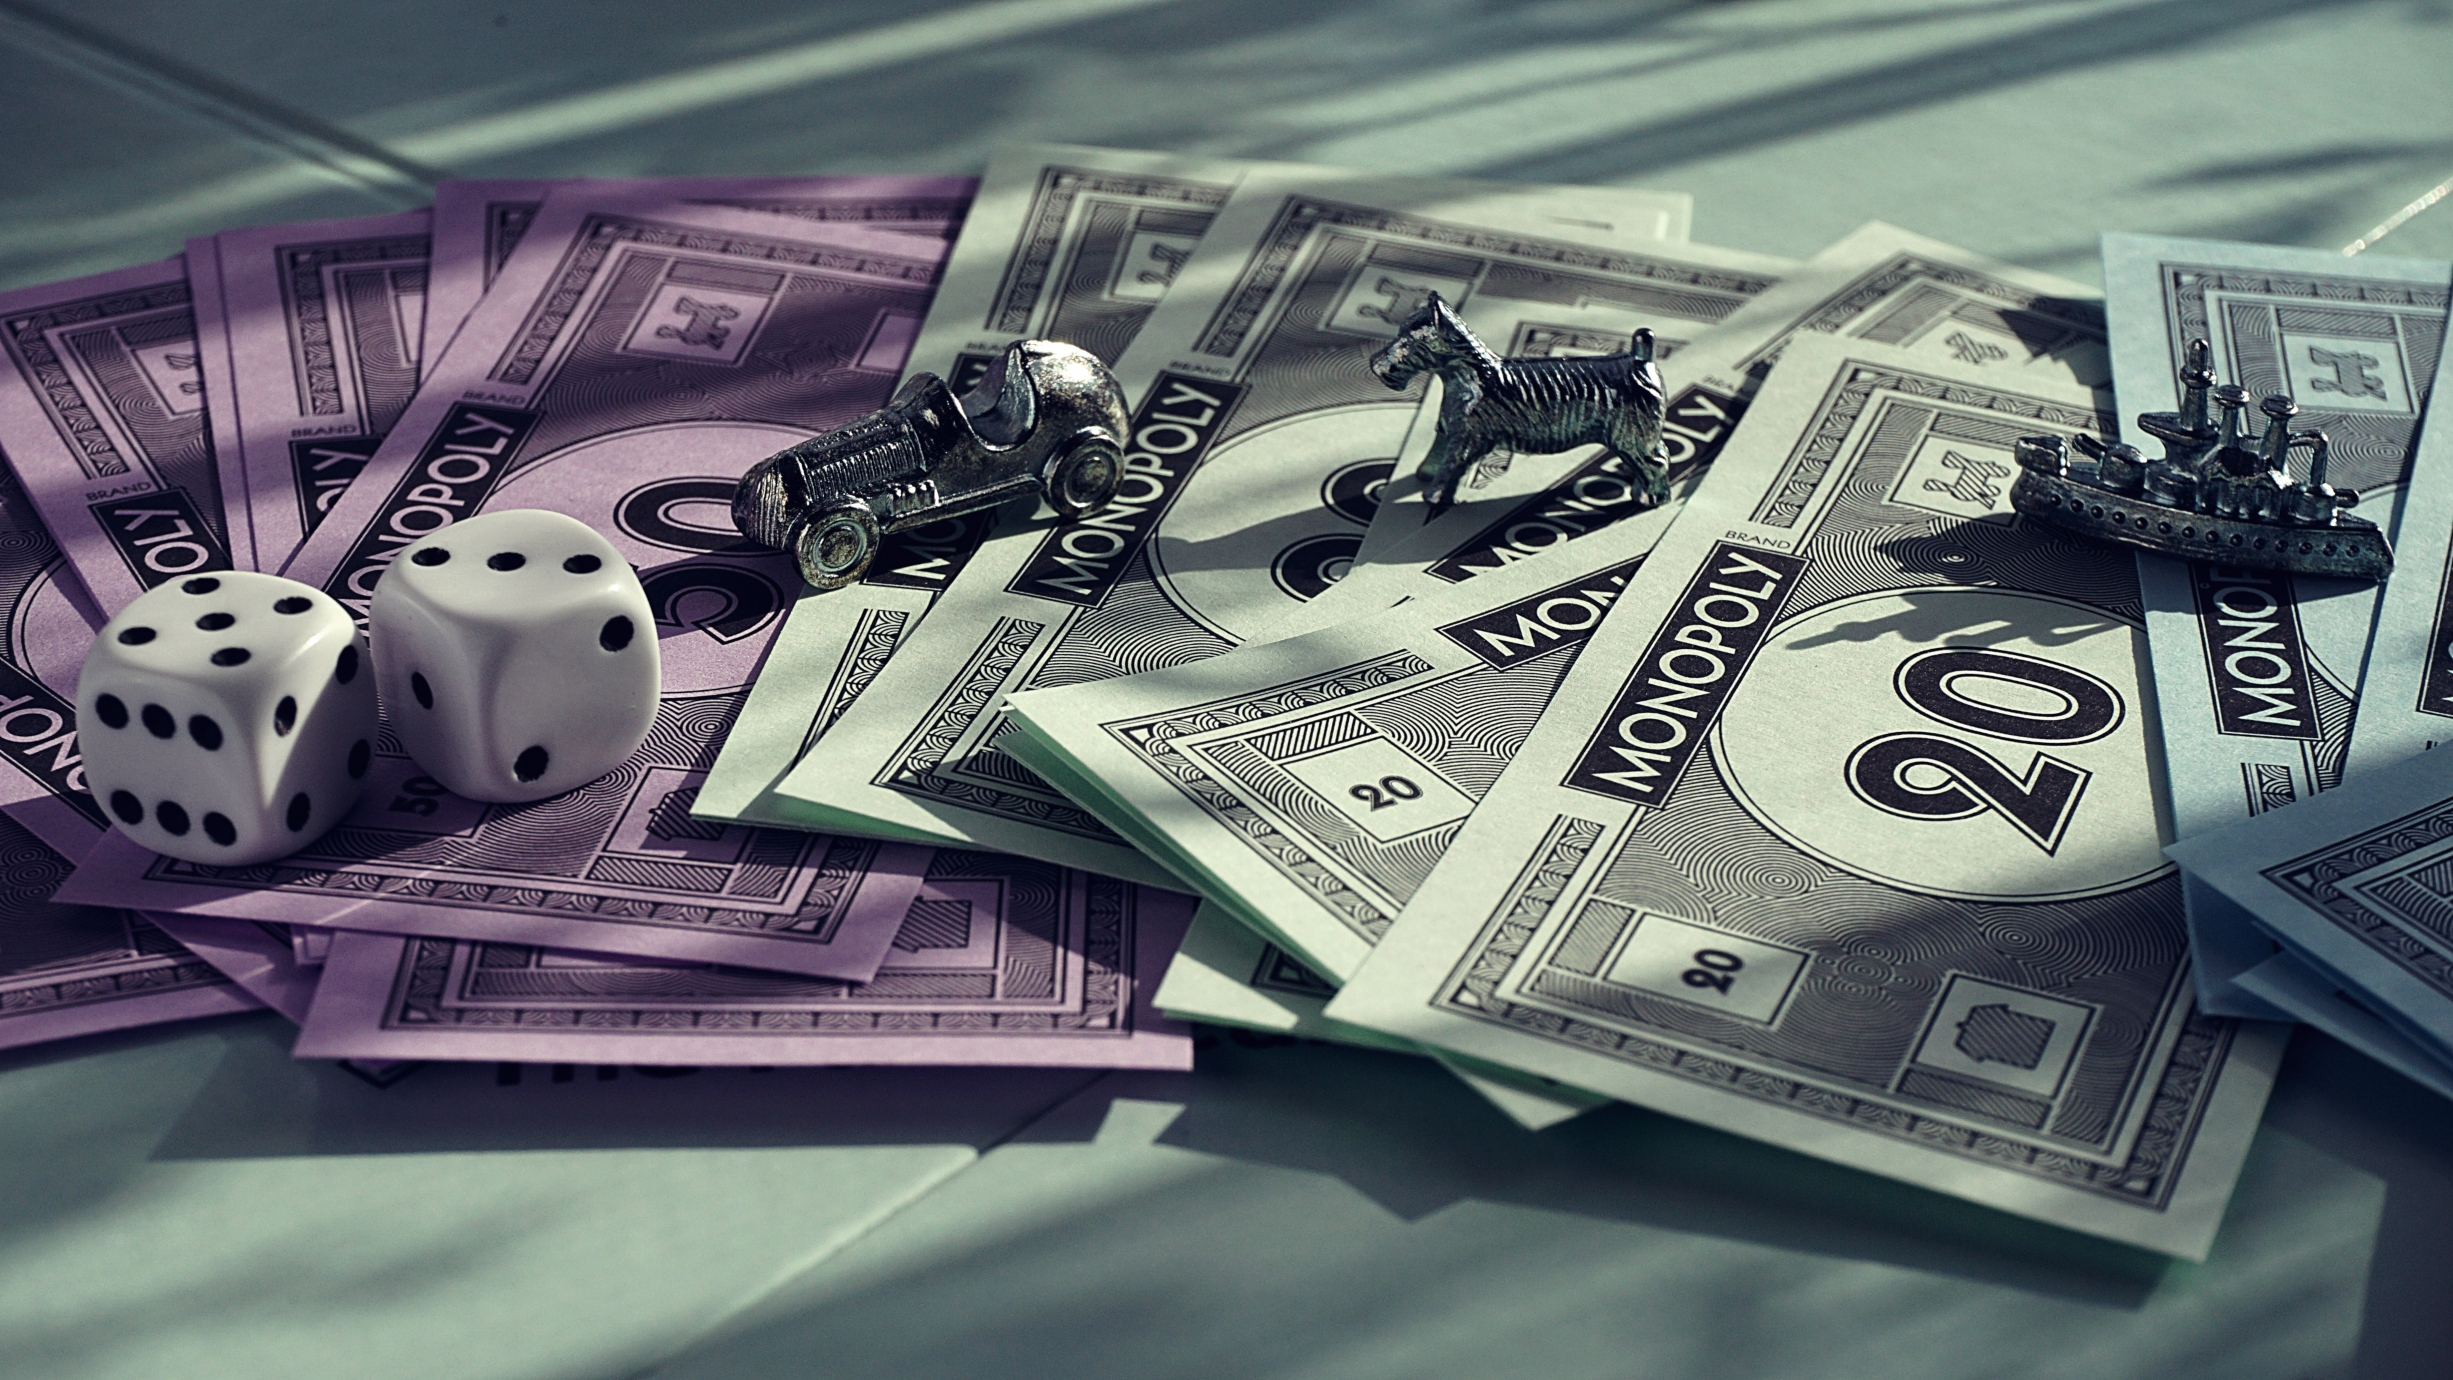 Monopoly board and cash | Photo by Suzy Hazelwood from Pexels